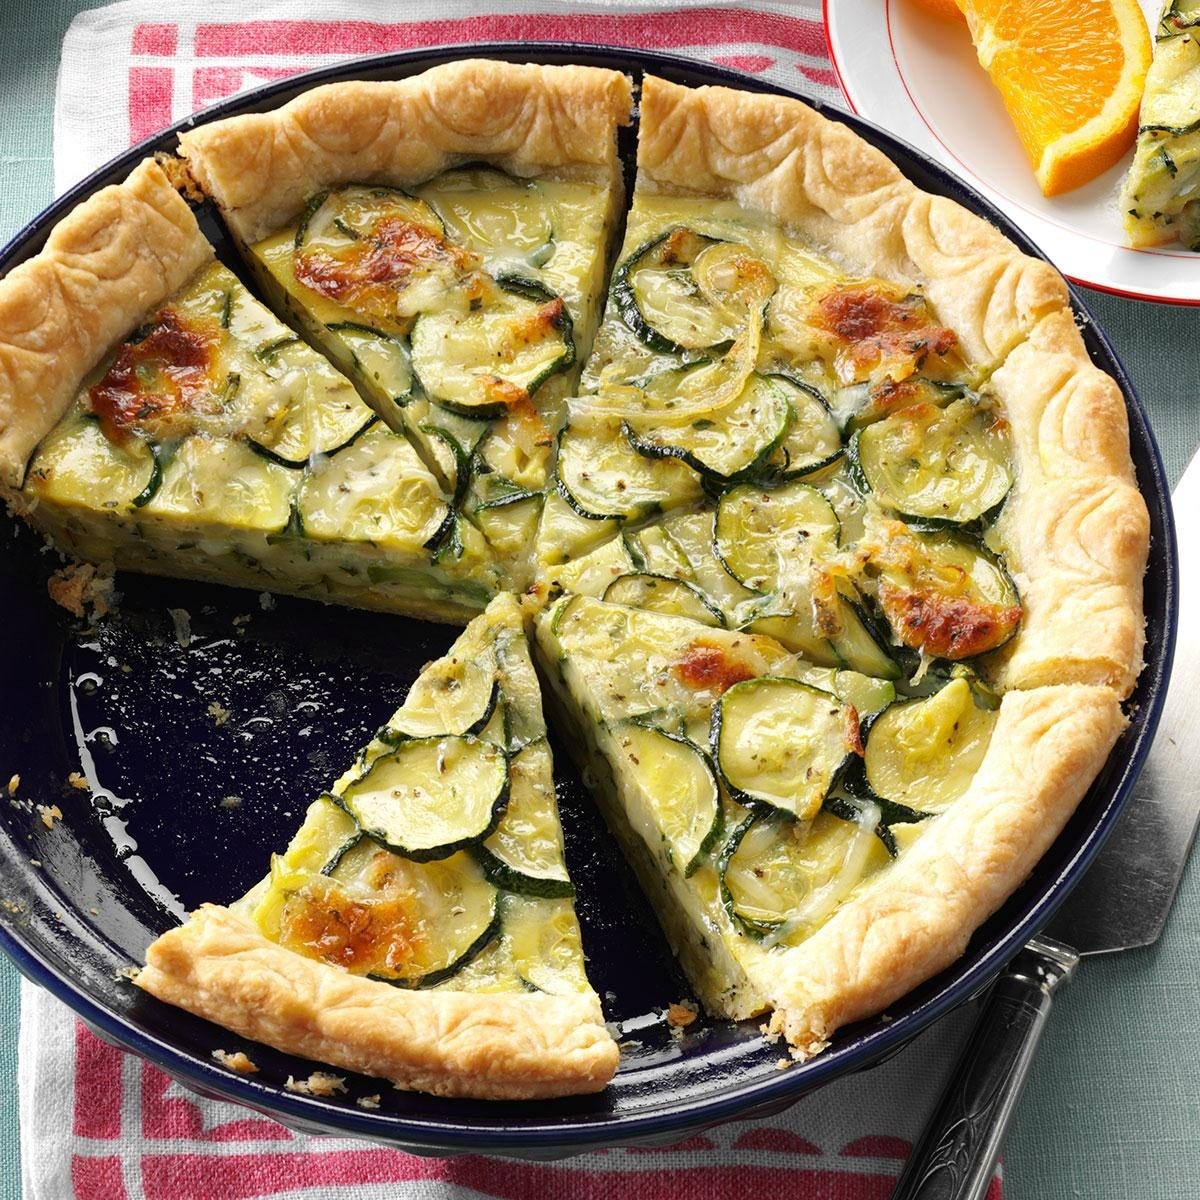 cheesy zucchini quiche recipe taste of home. Black Bedroom Furniture Sets. Home Design Ideas